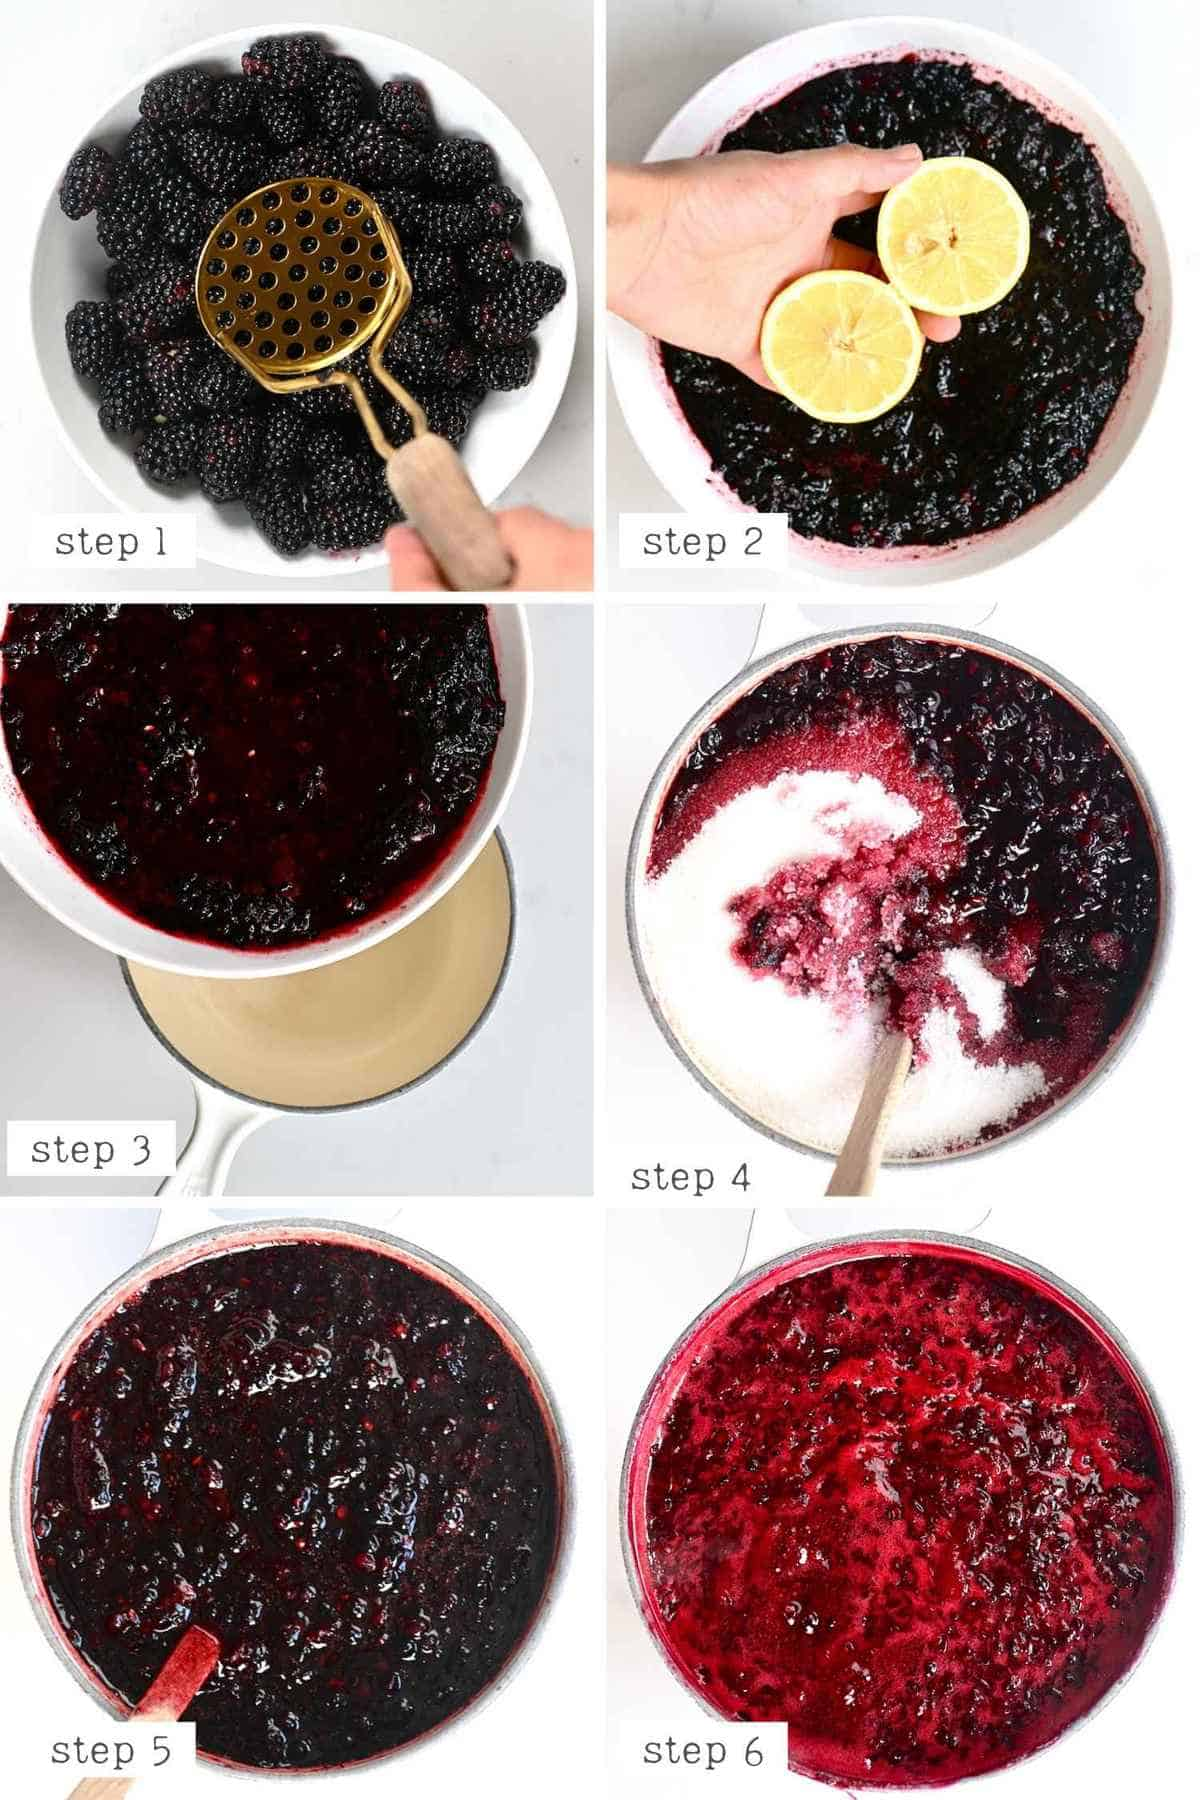 Steps for making Blackberry Jam